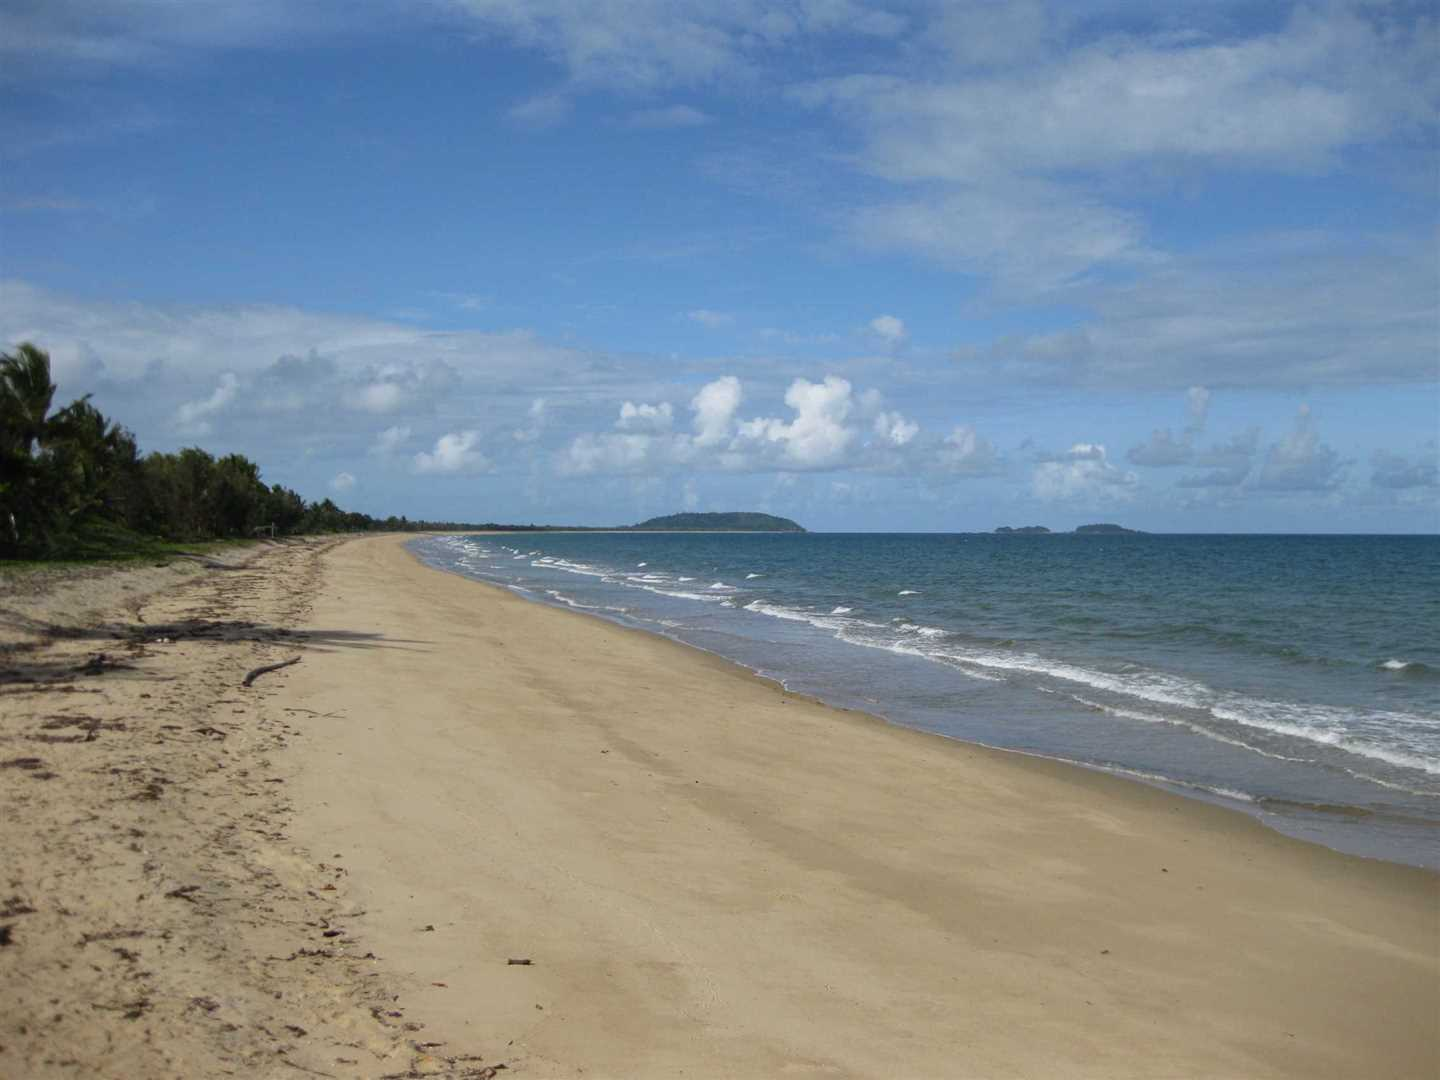 View of part of Cowley Beach, photo 2